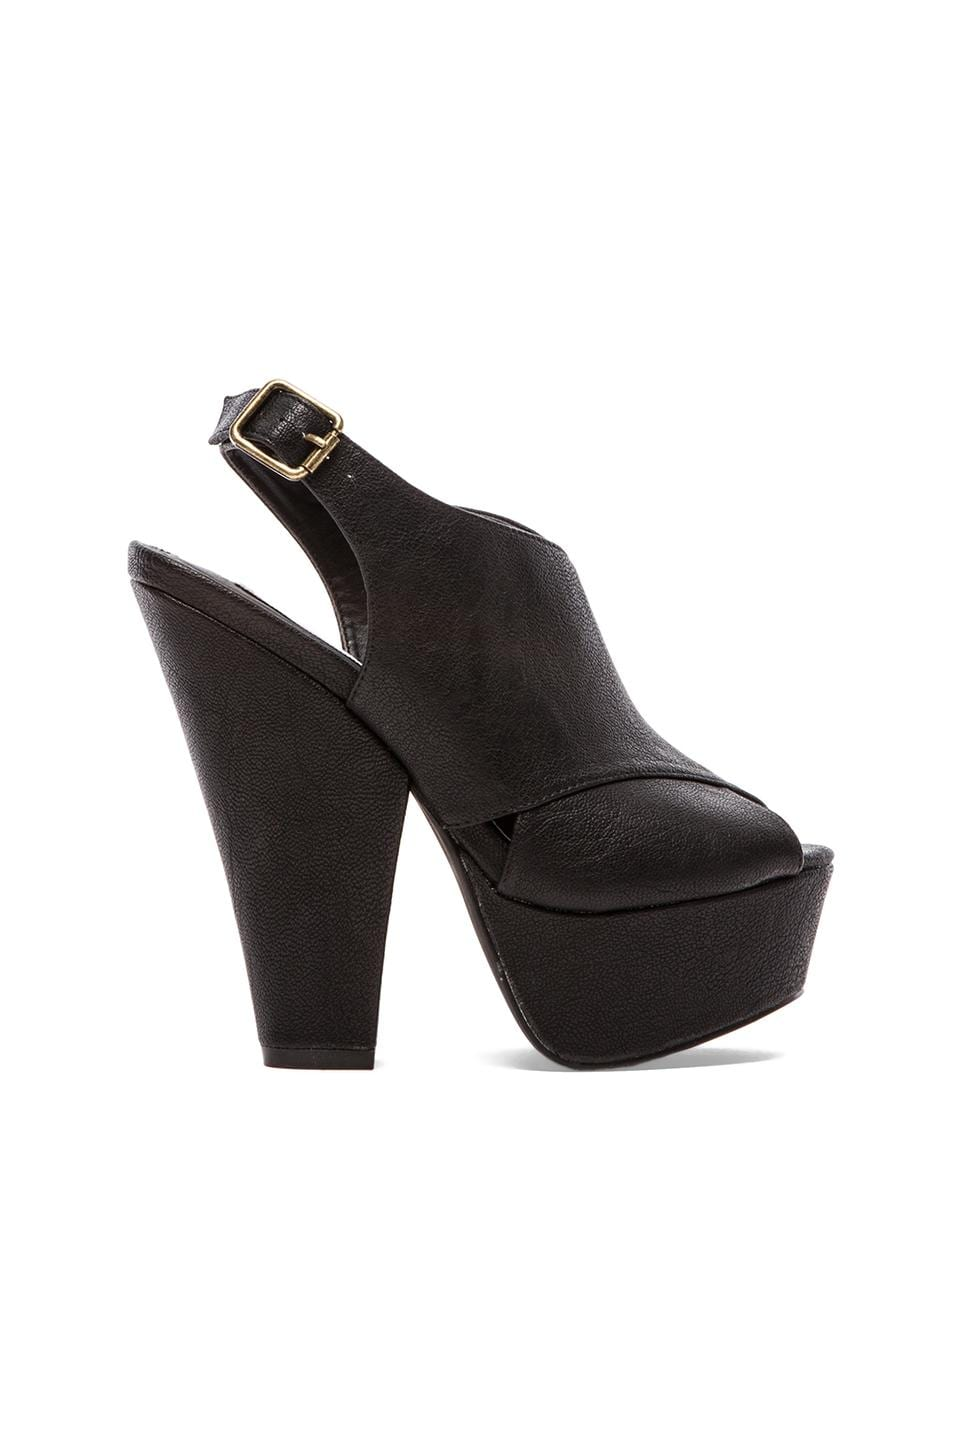 Steve Madden Galleria Platform in Black